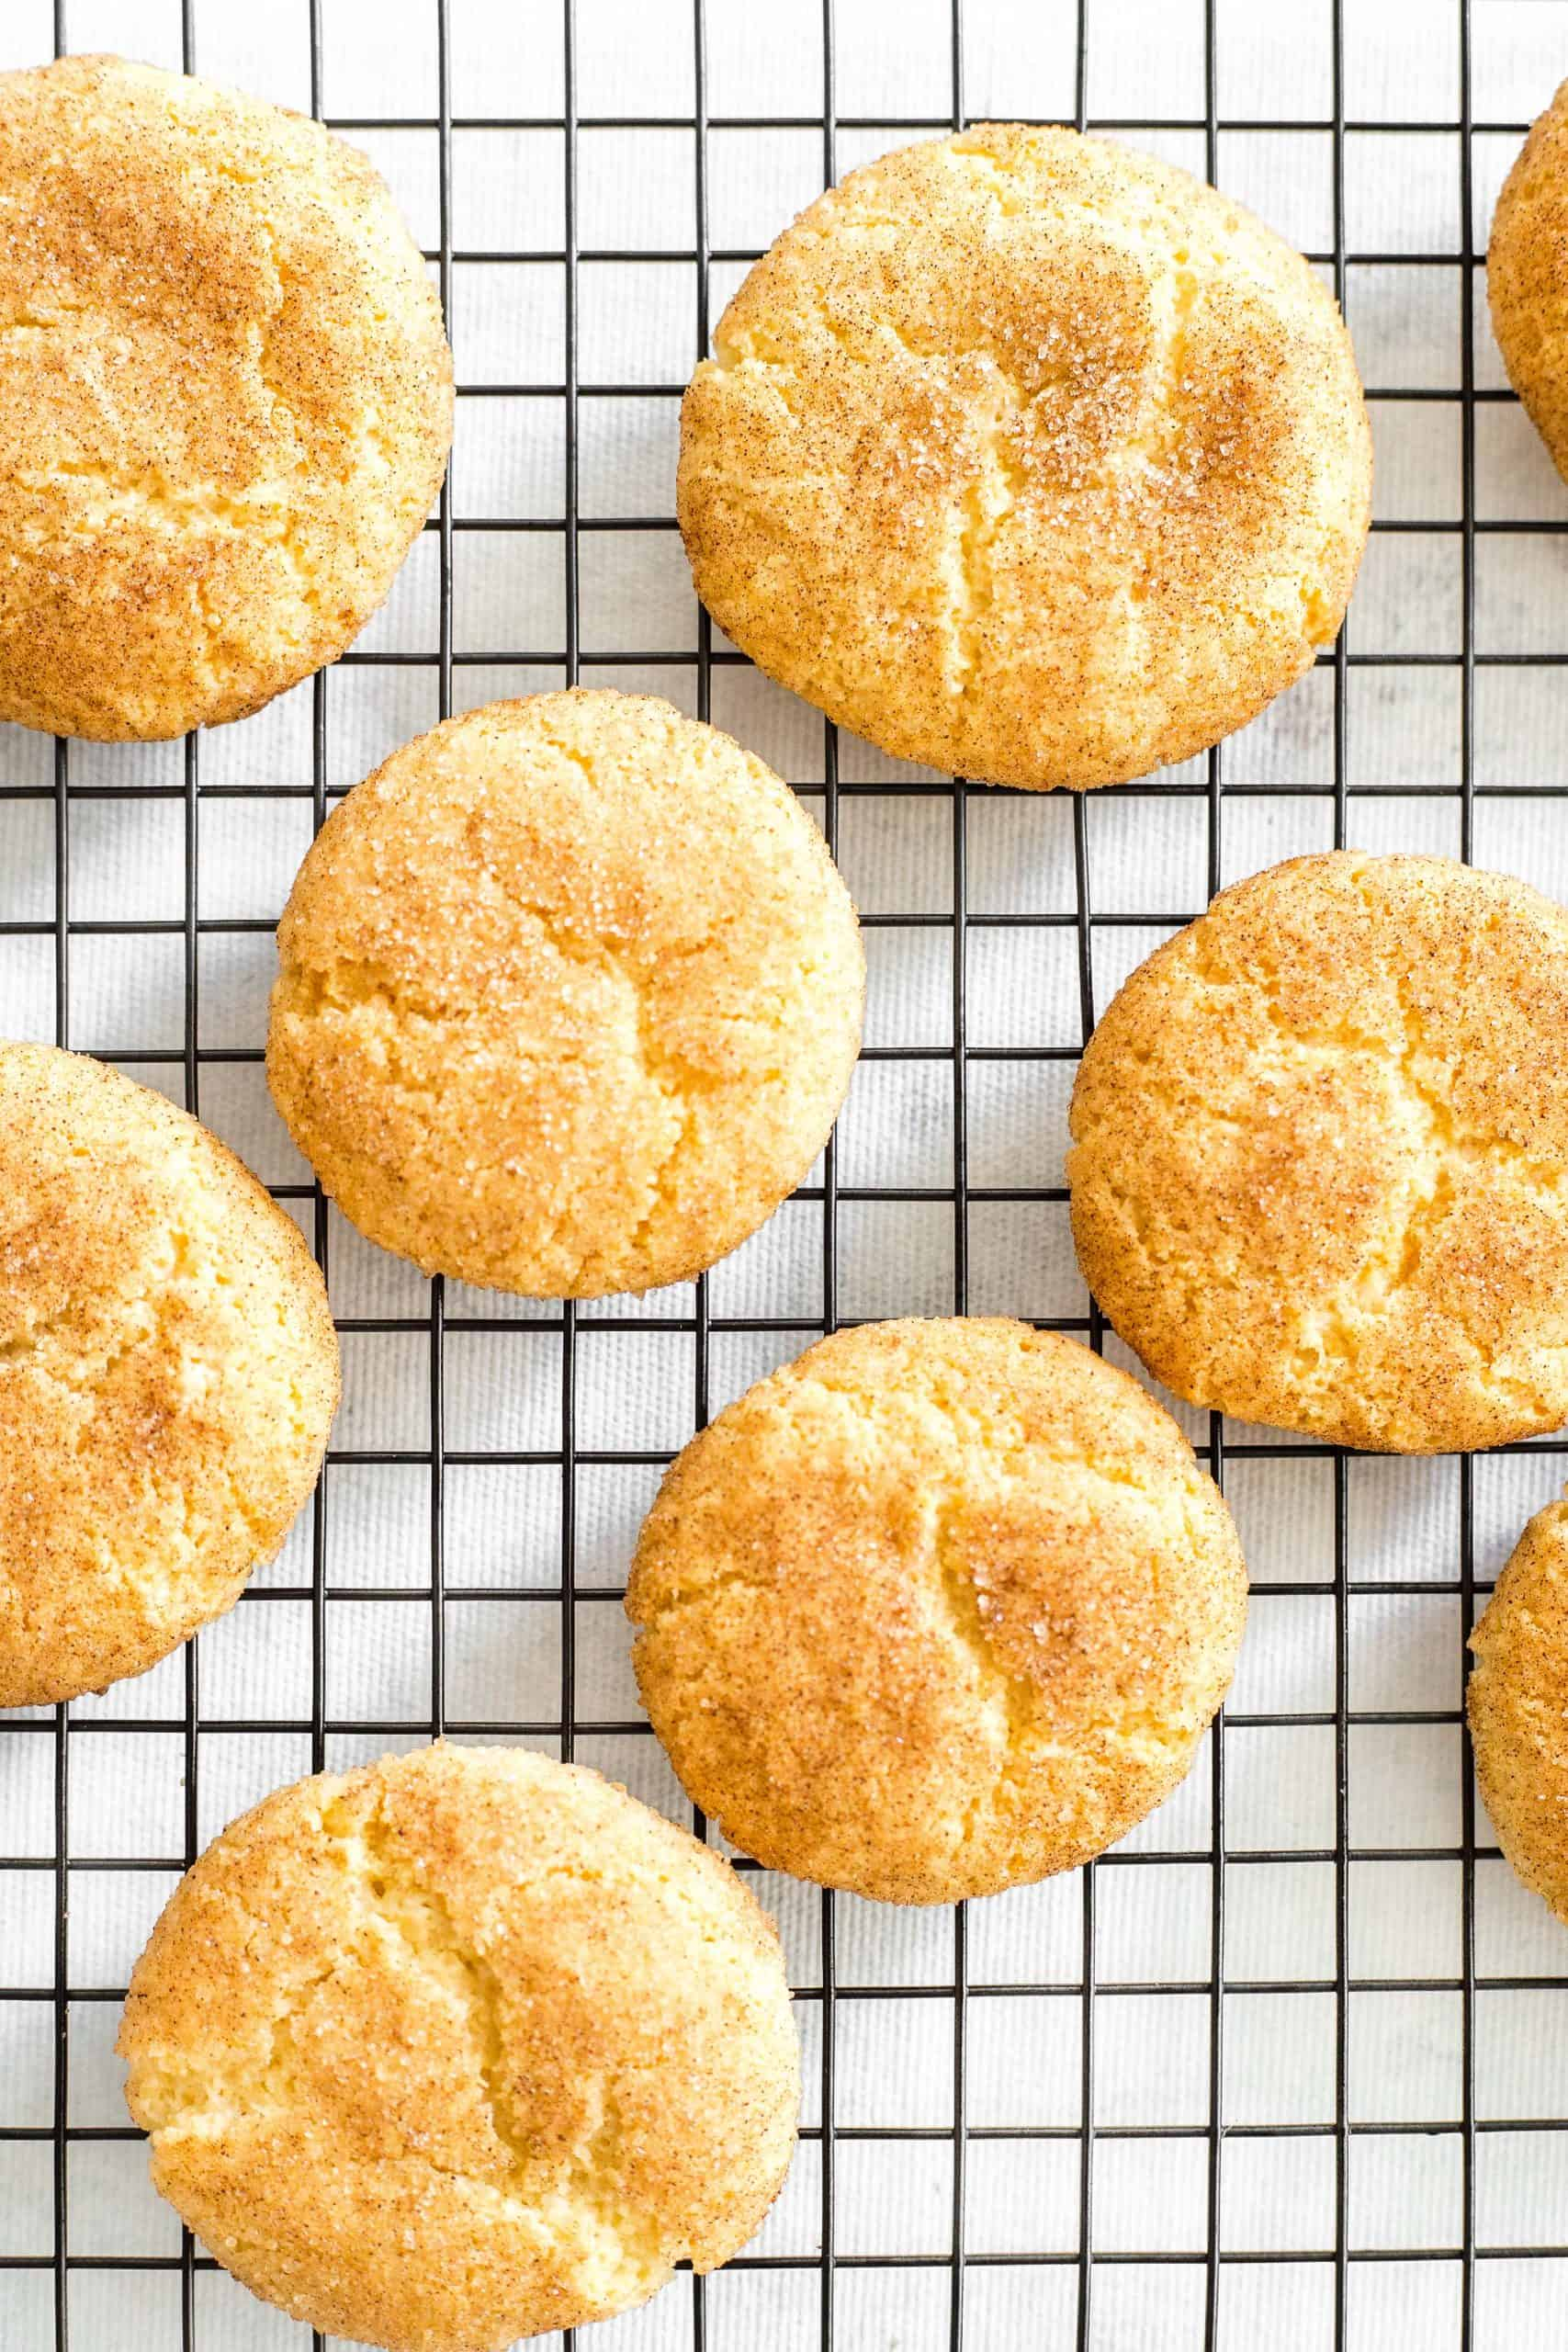 Snickerdoodle cookies cooling on a wire rack.